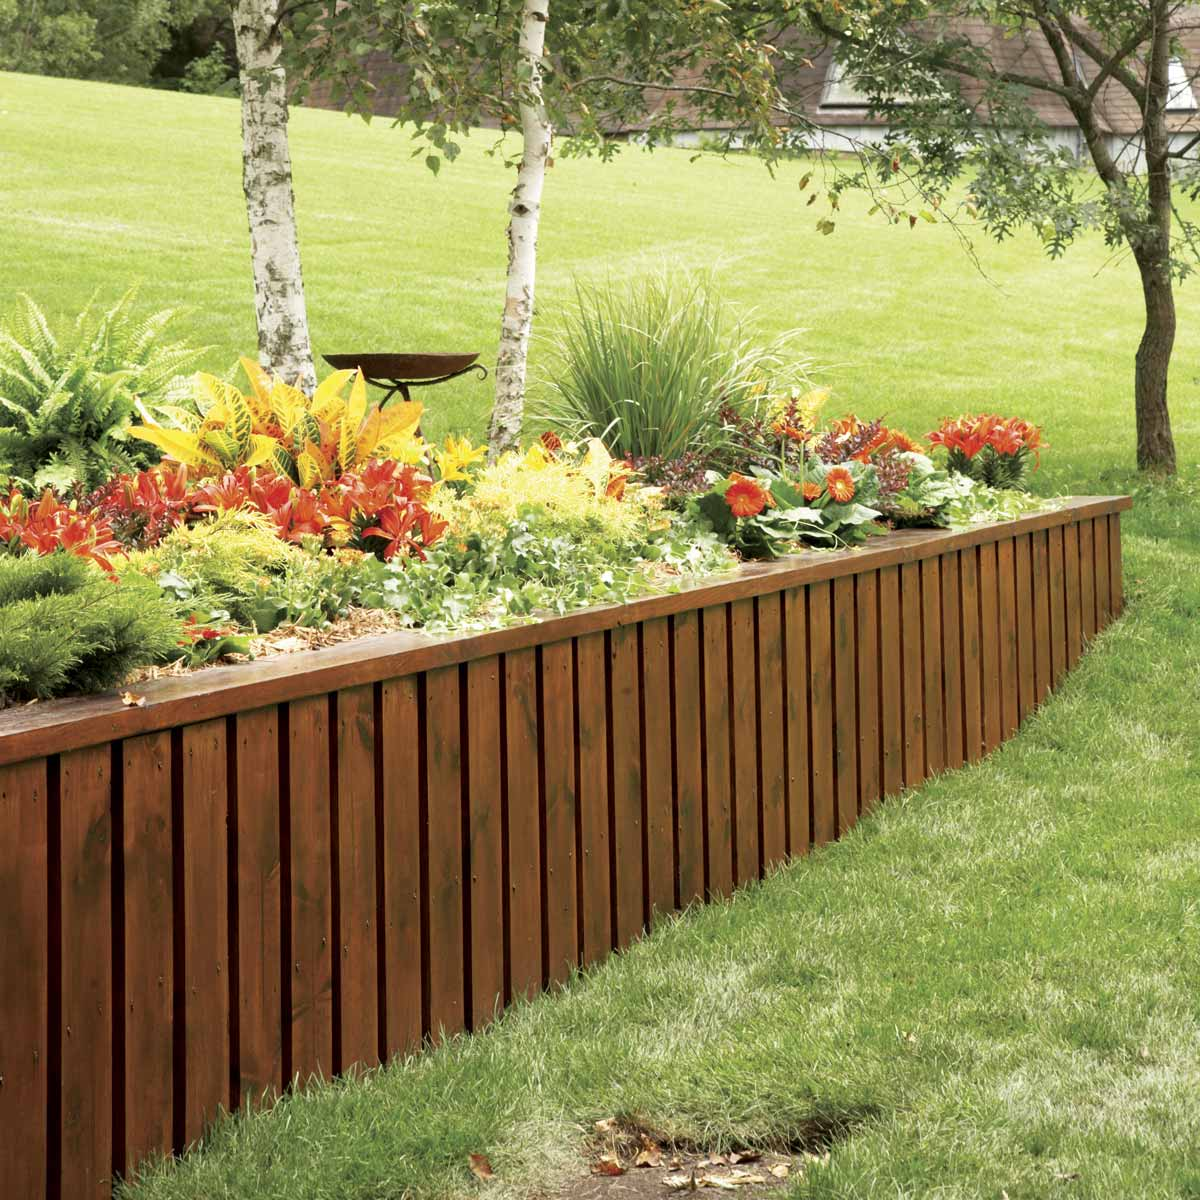 40 Retaining Wall Ideas For Your Garden Material Ideas Tips And